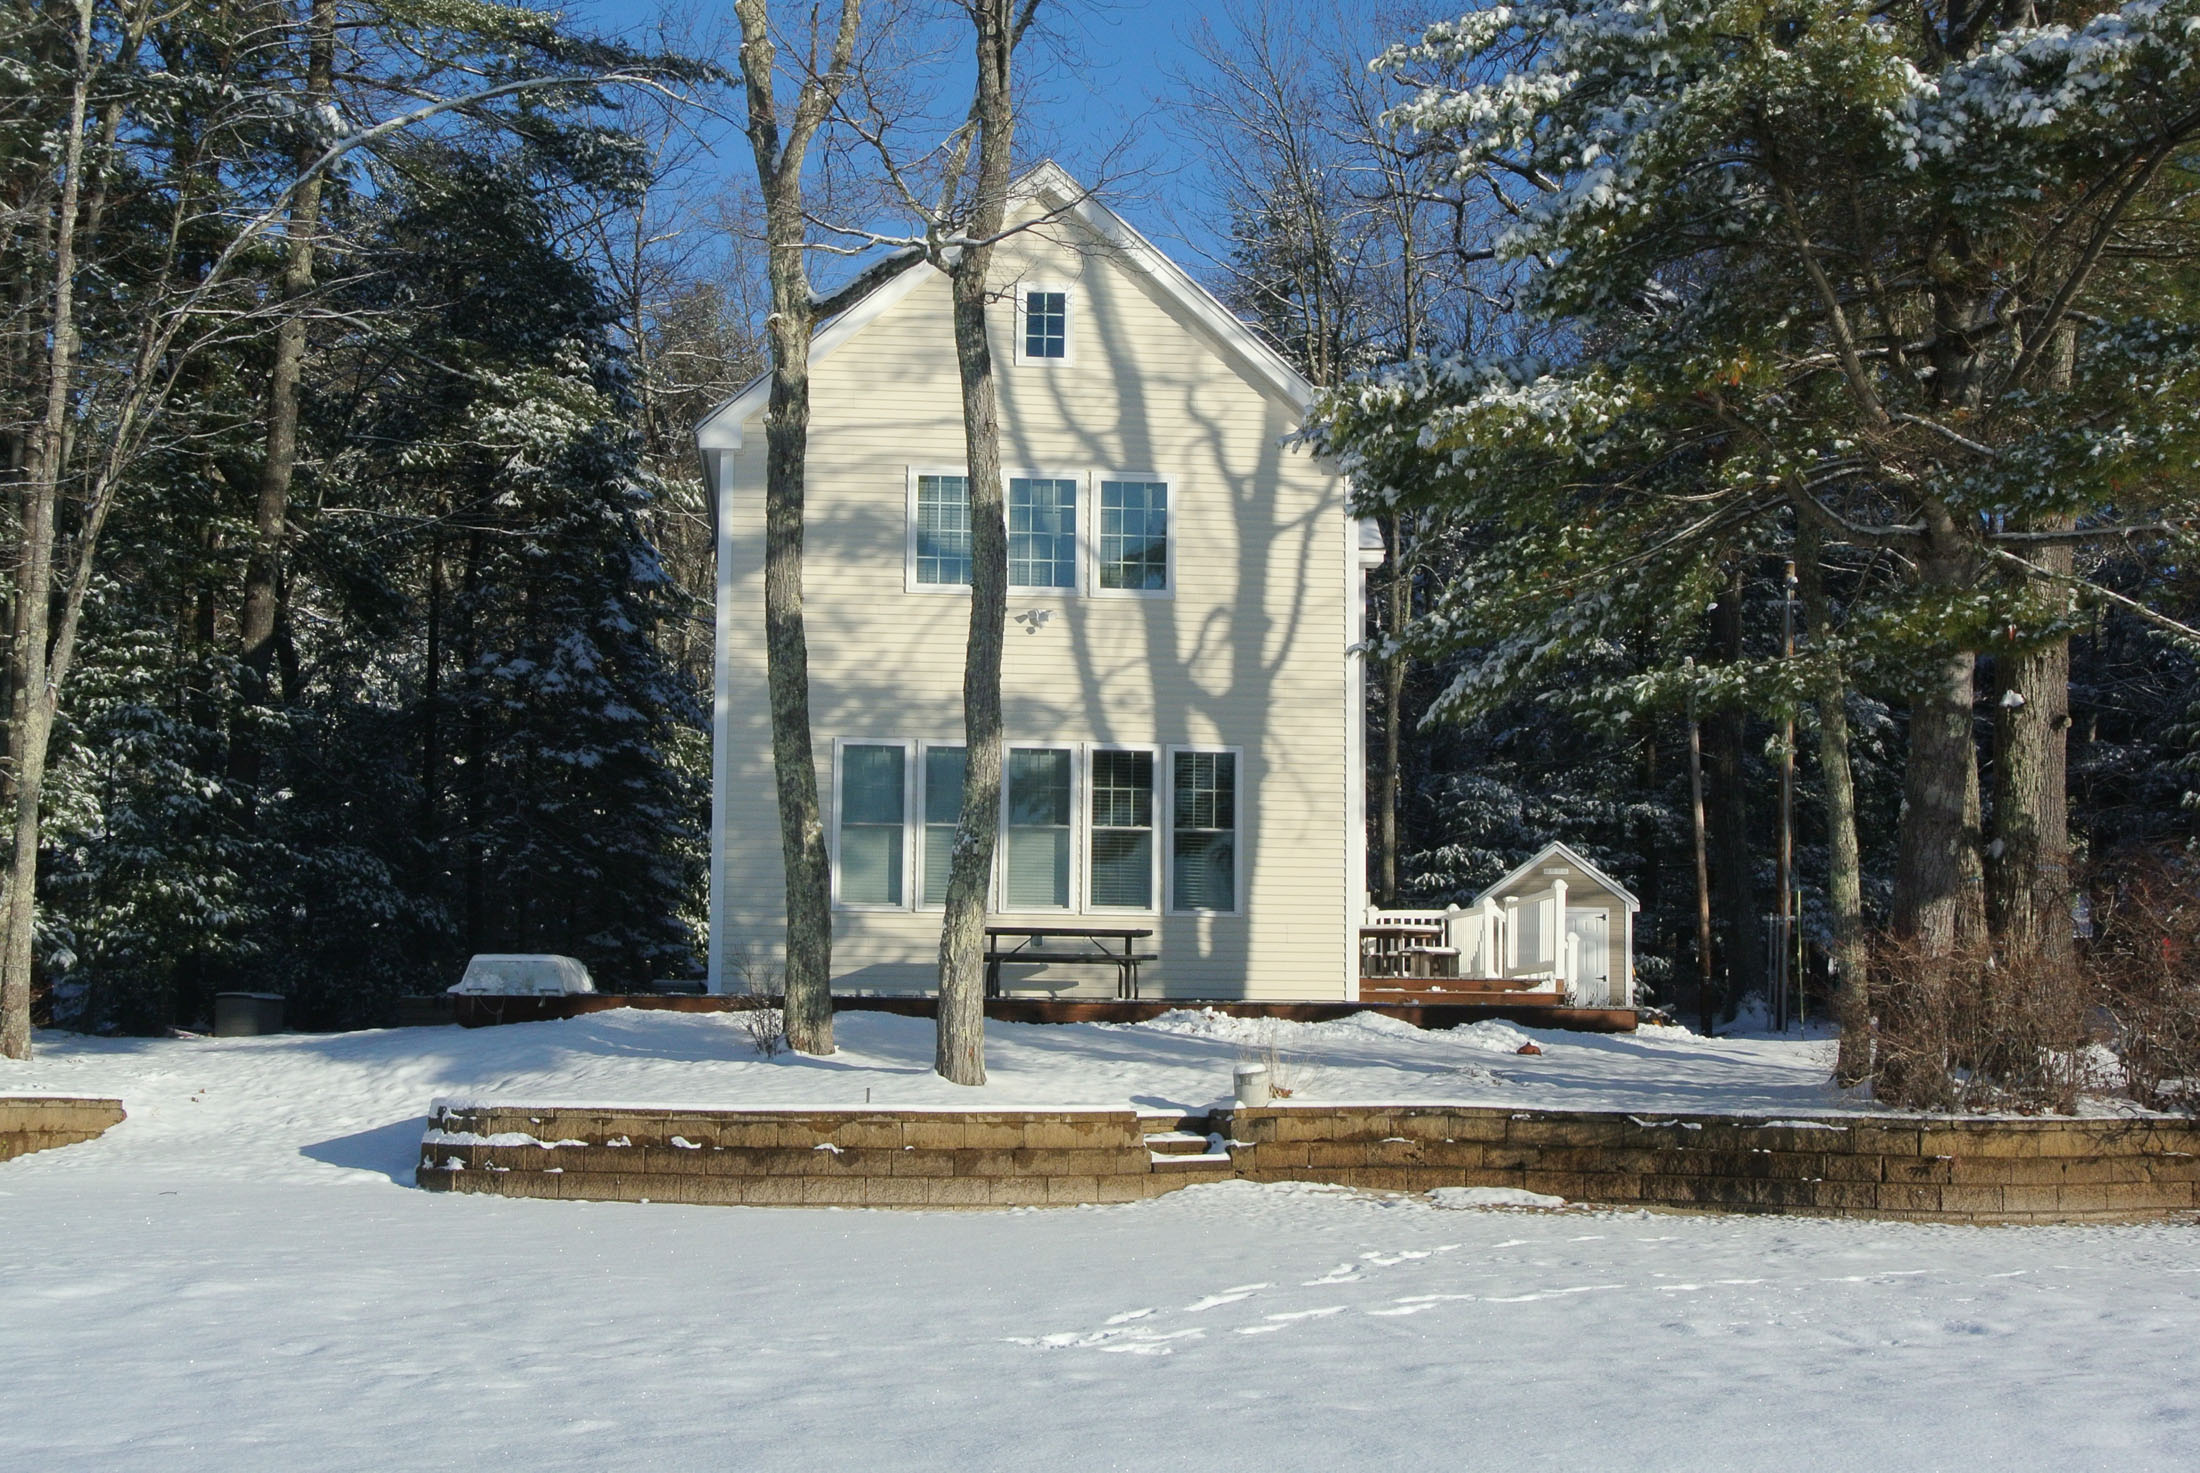 Single Family Home for Sale at 15 Nichols, Barnstead Barnstead, New Hampshire, 03225 United States